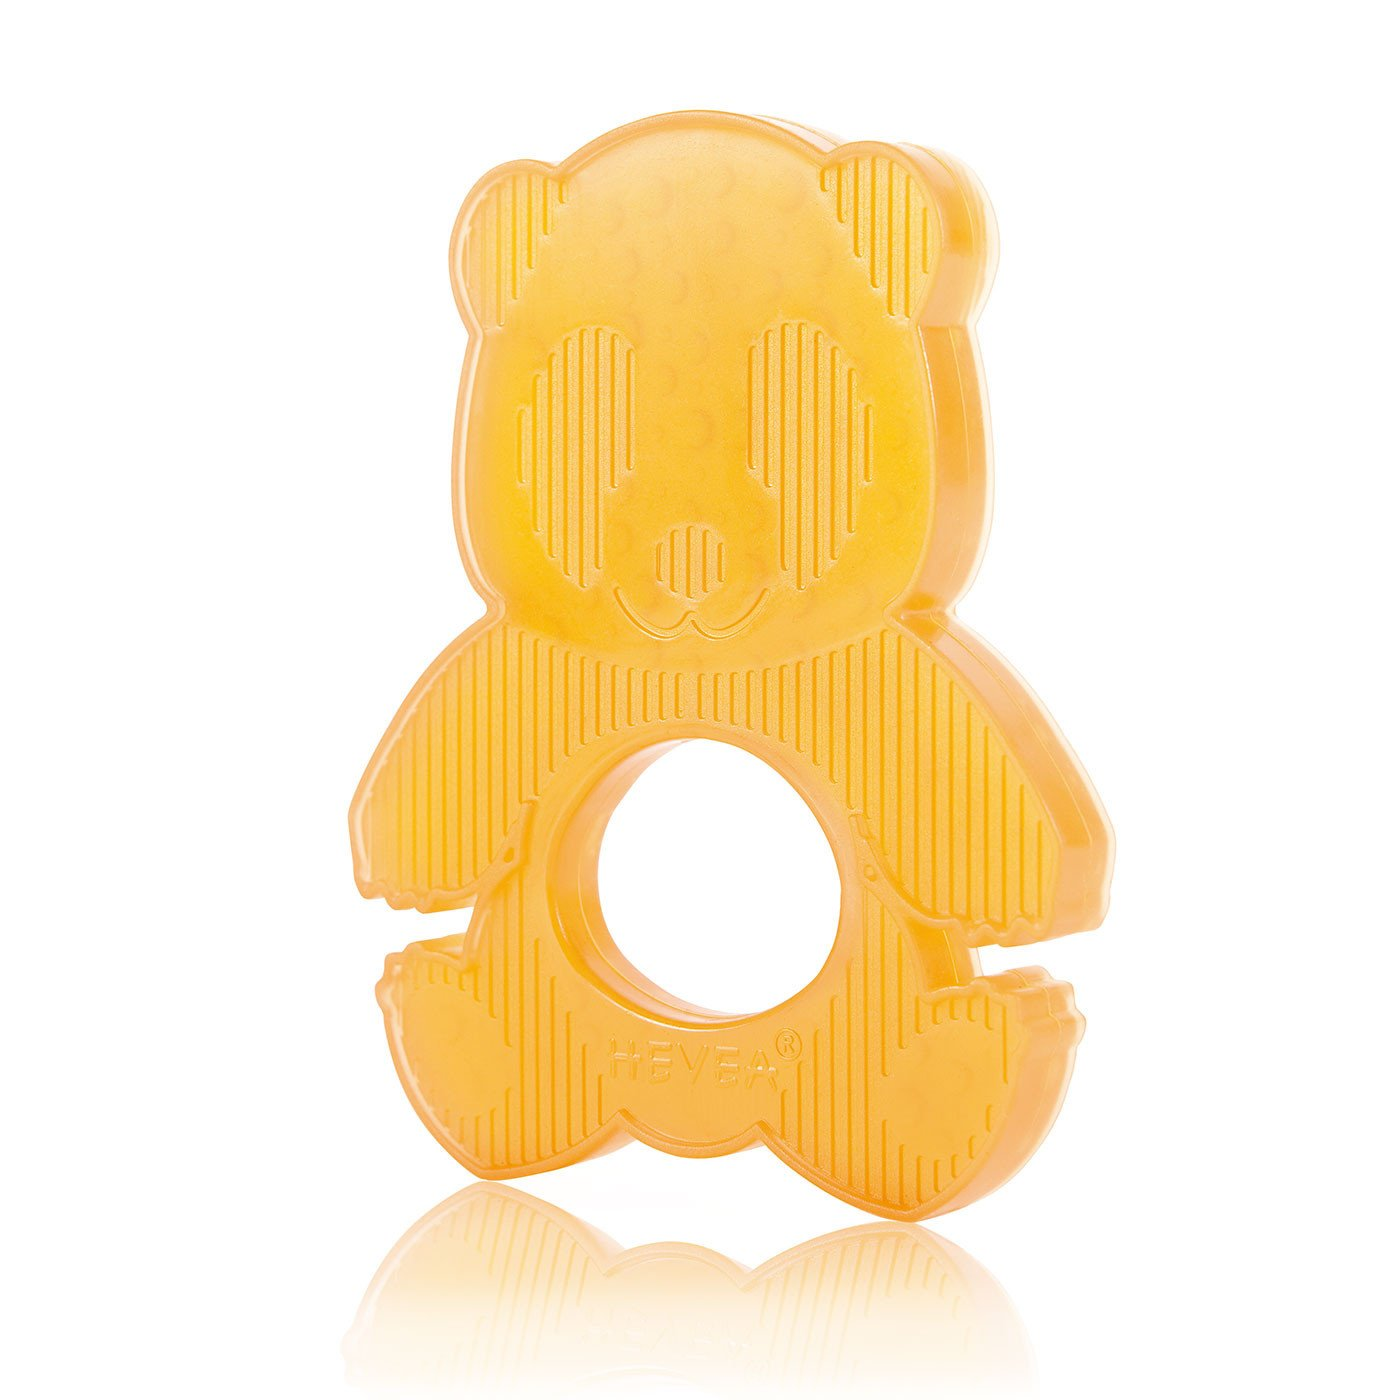 Hevea Natural Rubber Panda Teether Hevea Baby Bath Toys at Little Earth Nest Eco Shop